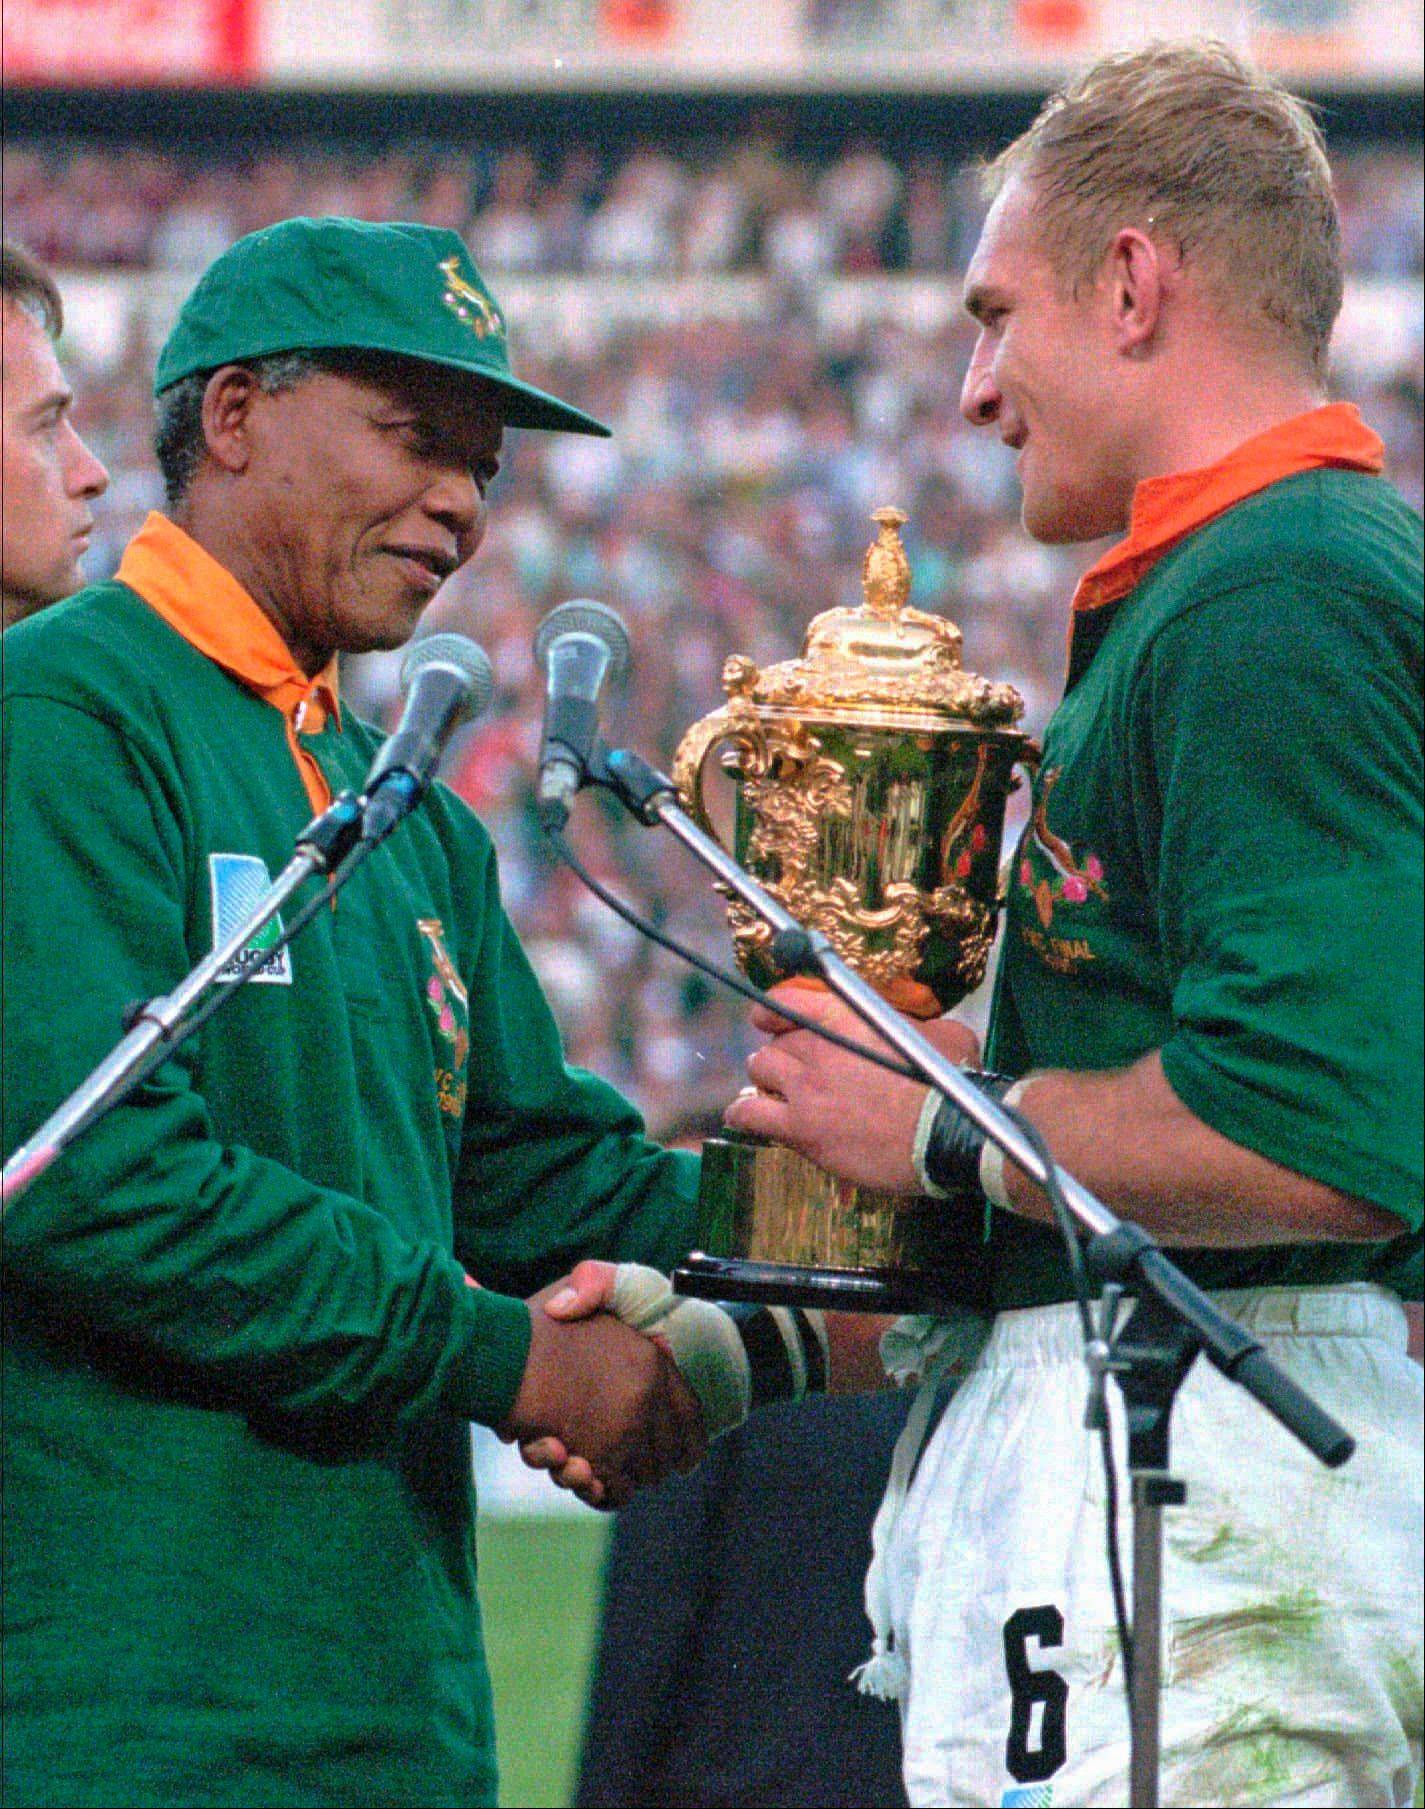 South African rugby captain Francios Pienaar, right, receives the Rugby World Cup from South African President Nelson Mandela, who wears a South African rugby shirt, after they defeated New Zealand in the final June 24, 1995.